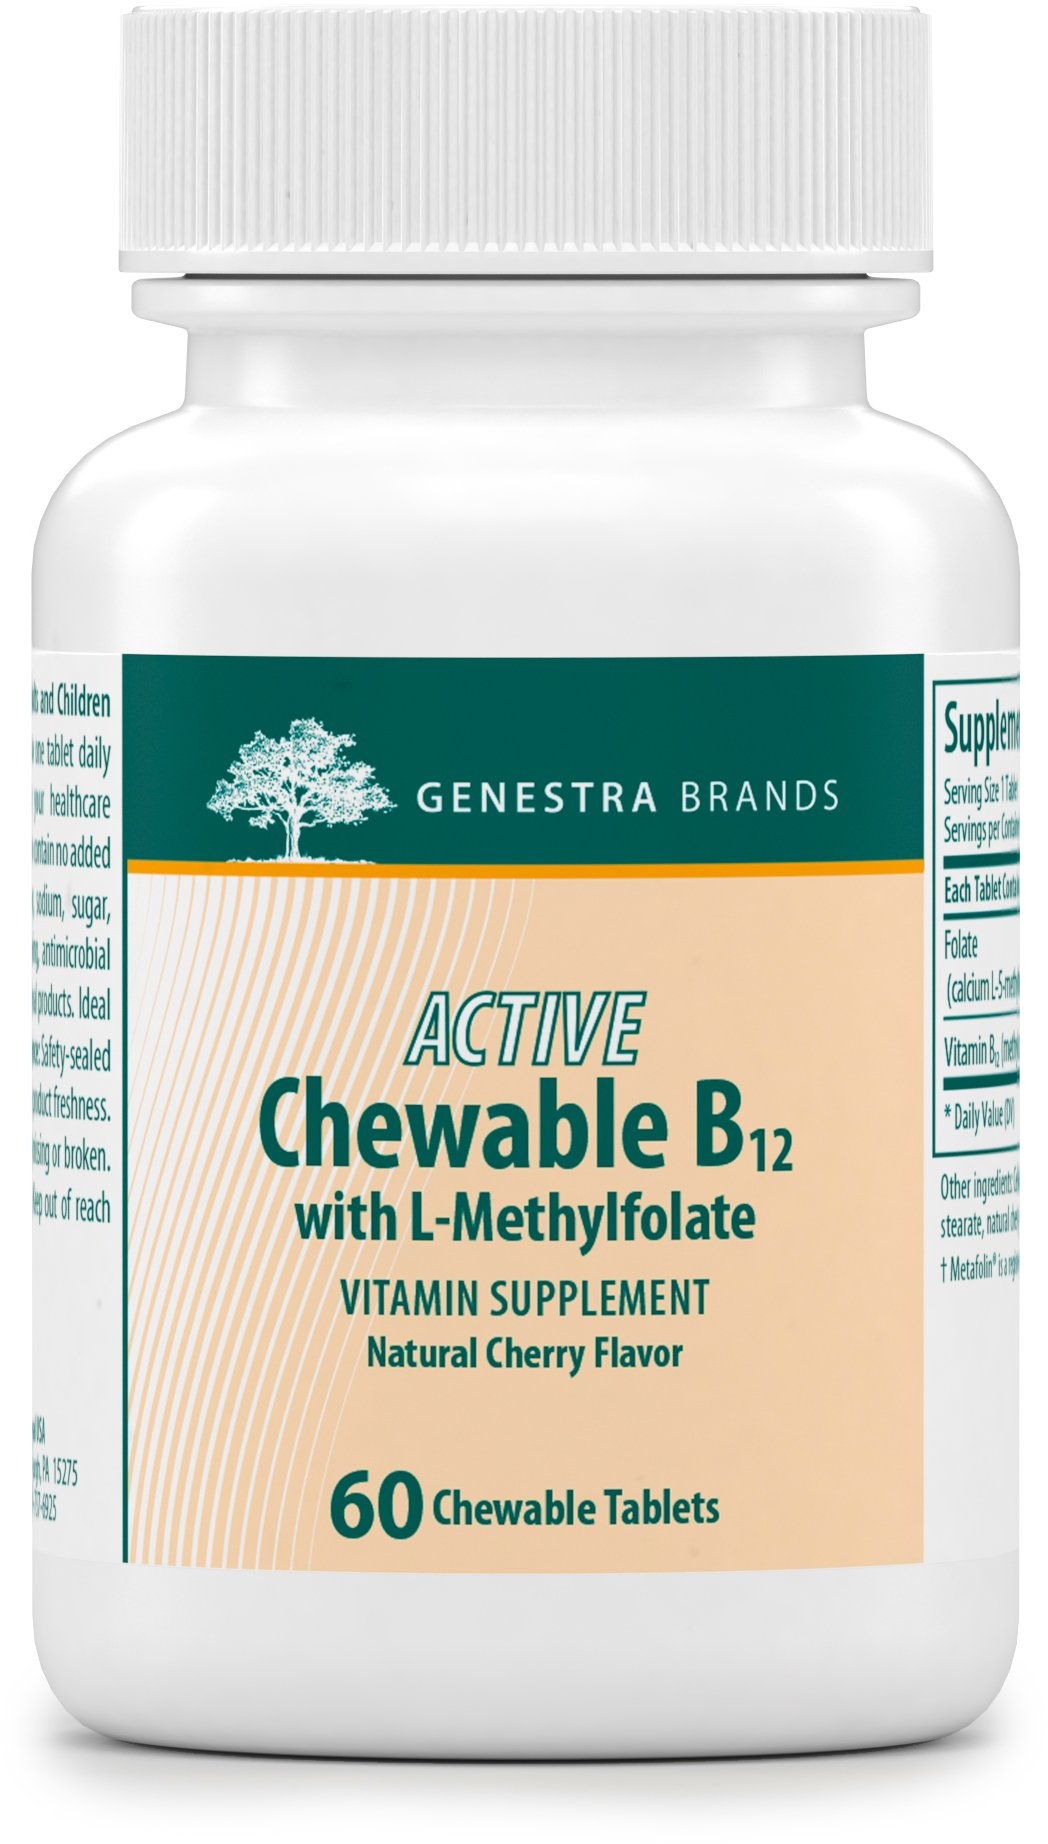 Genestra Brands - Active Chewable B12 with L-Methylfolate - Chewable Folate Supplement - Natural Cherry Flavor - 60 Chewable Tablets